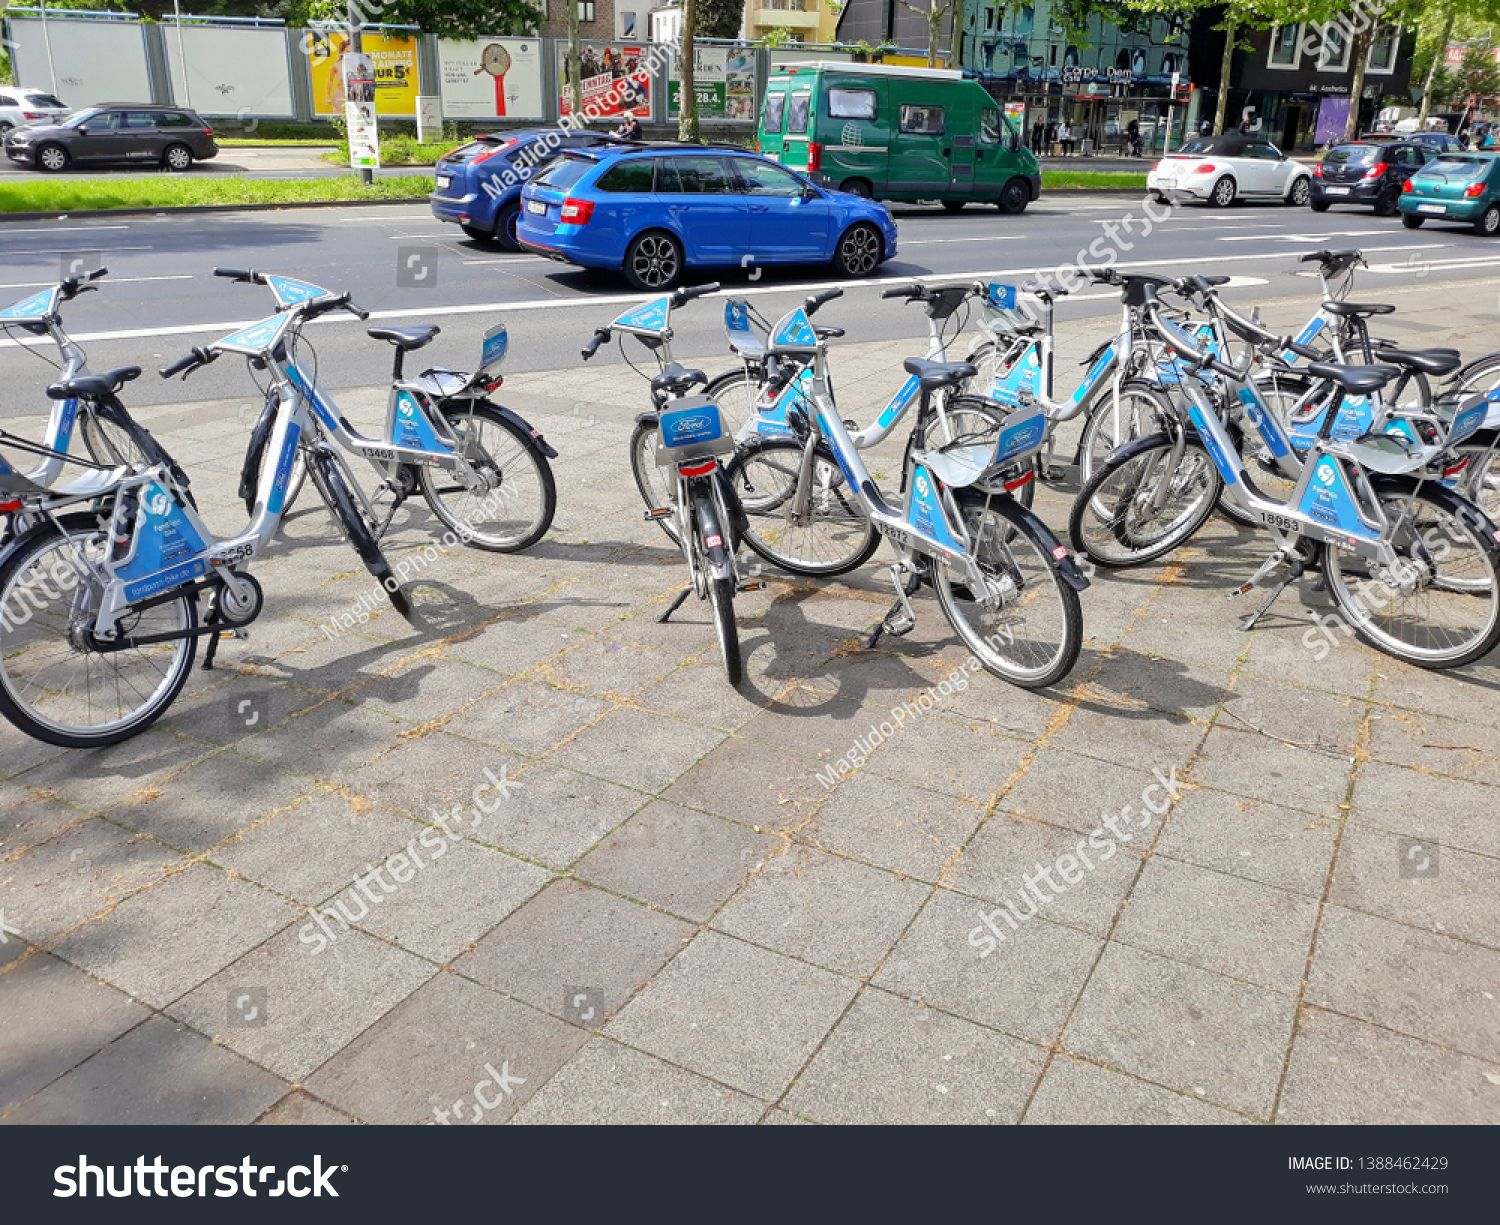 Close-up of many bicycles for rent in downtown of Cologne in Germany 2019 #Ad , #SPONSORED, #rent#bicycles#Close#downtown